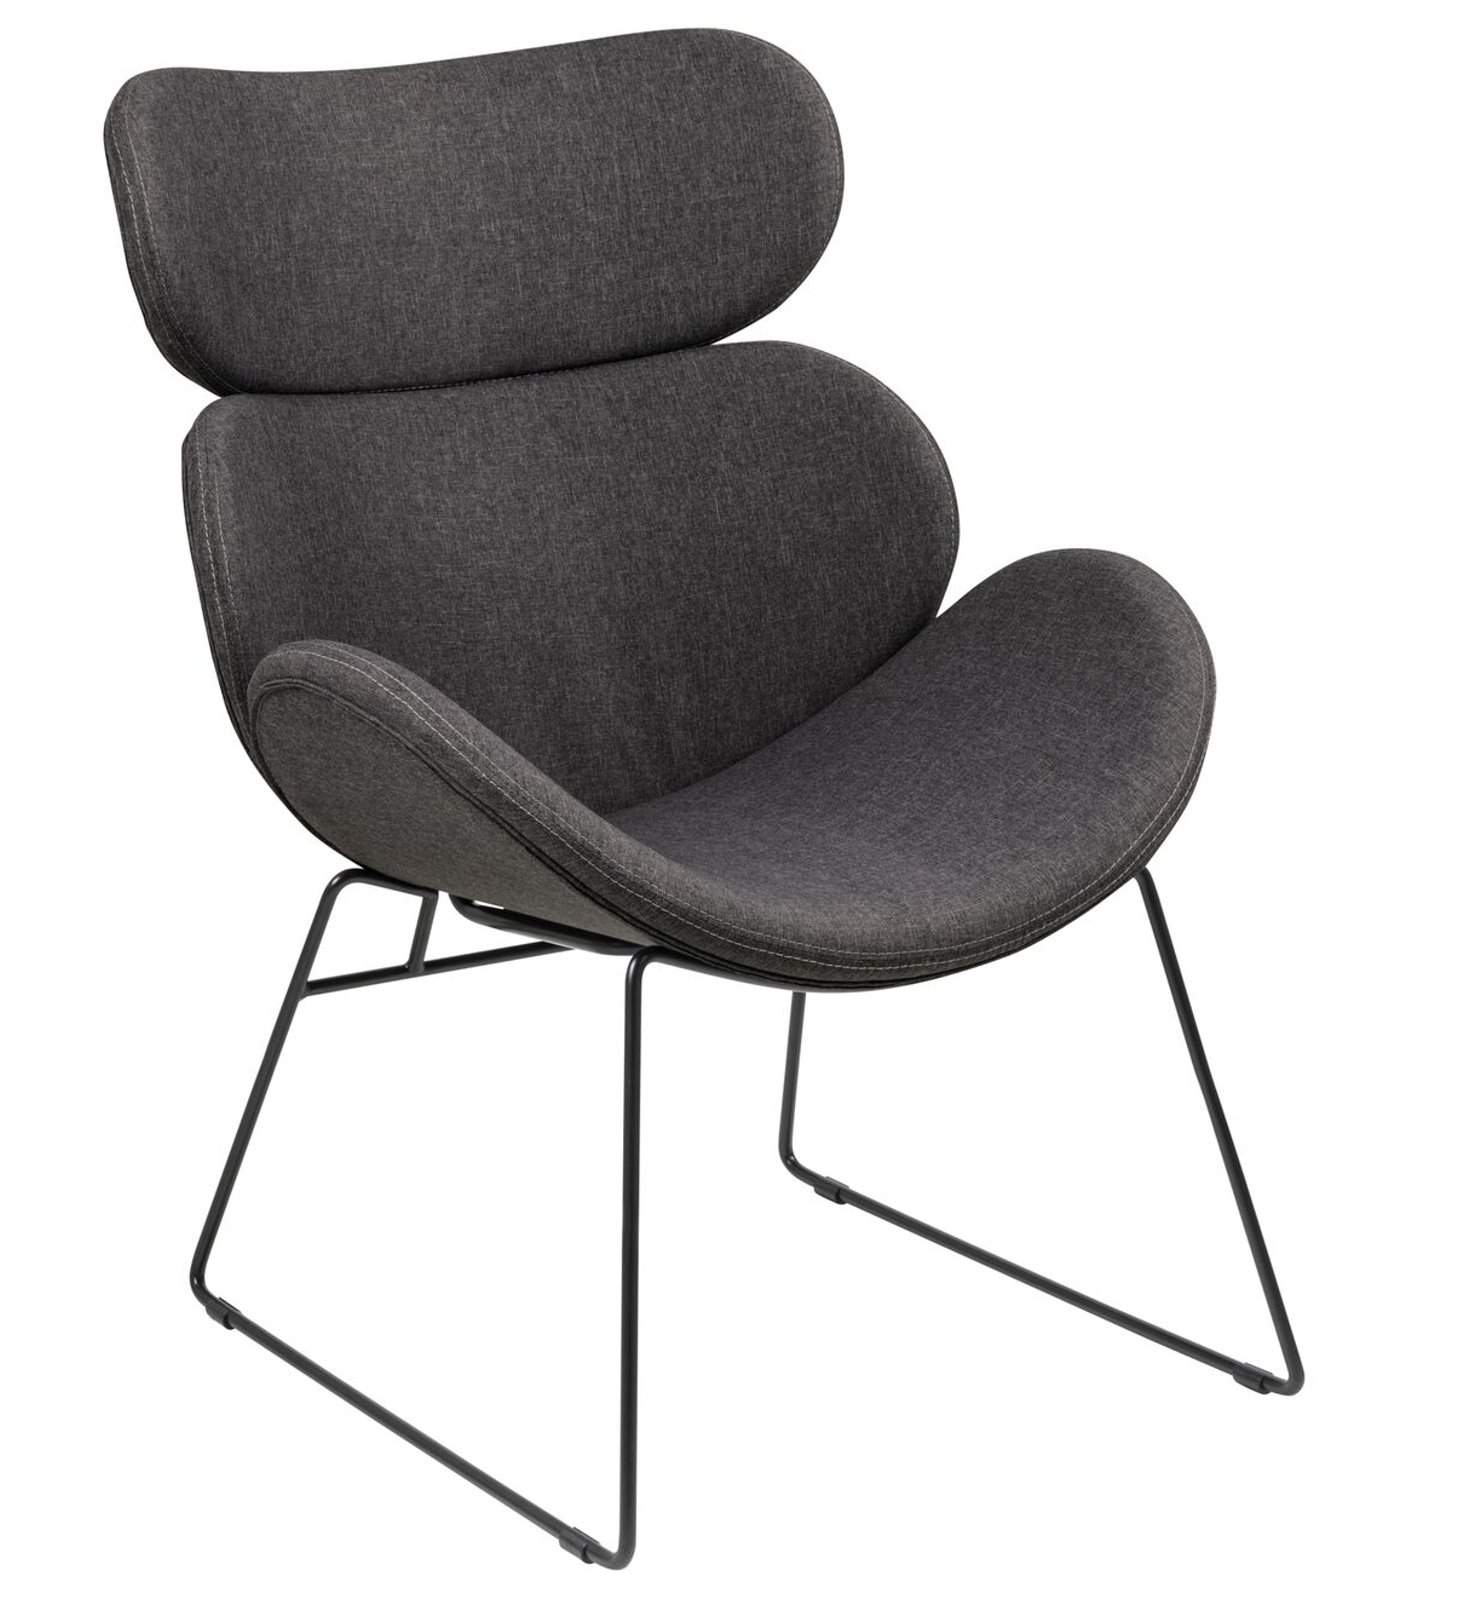 Clubsessel grau  PKline Sessel CAZY in grau Relaxsessel Loungesessel Clubsessel ...